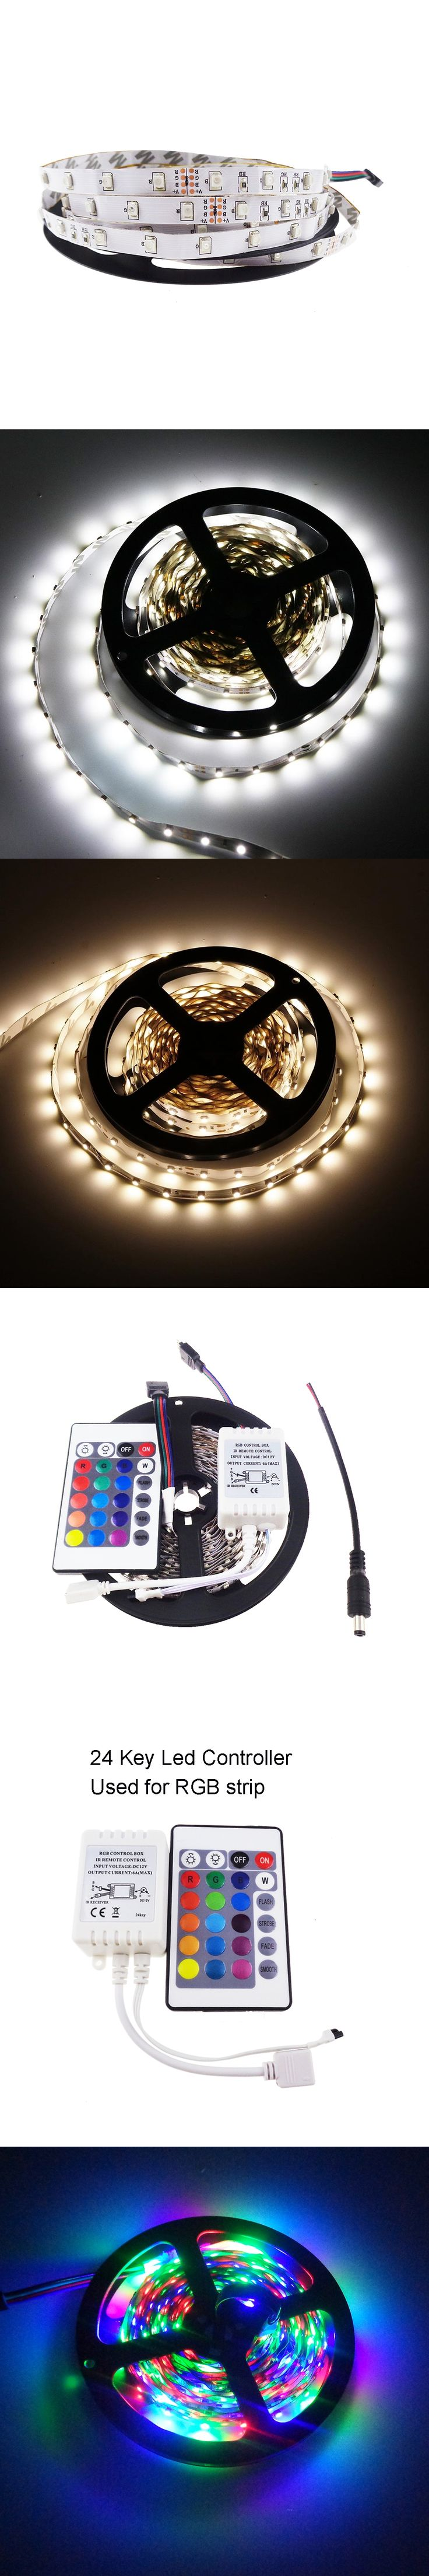 3528 led strips 300leds 5m/lot SMD chip DC12V bar light RGB color with 24Key IR remote controller DC cable non-waterproof R